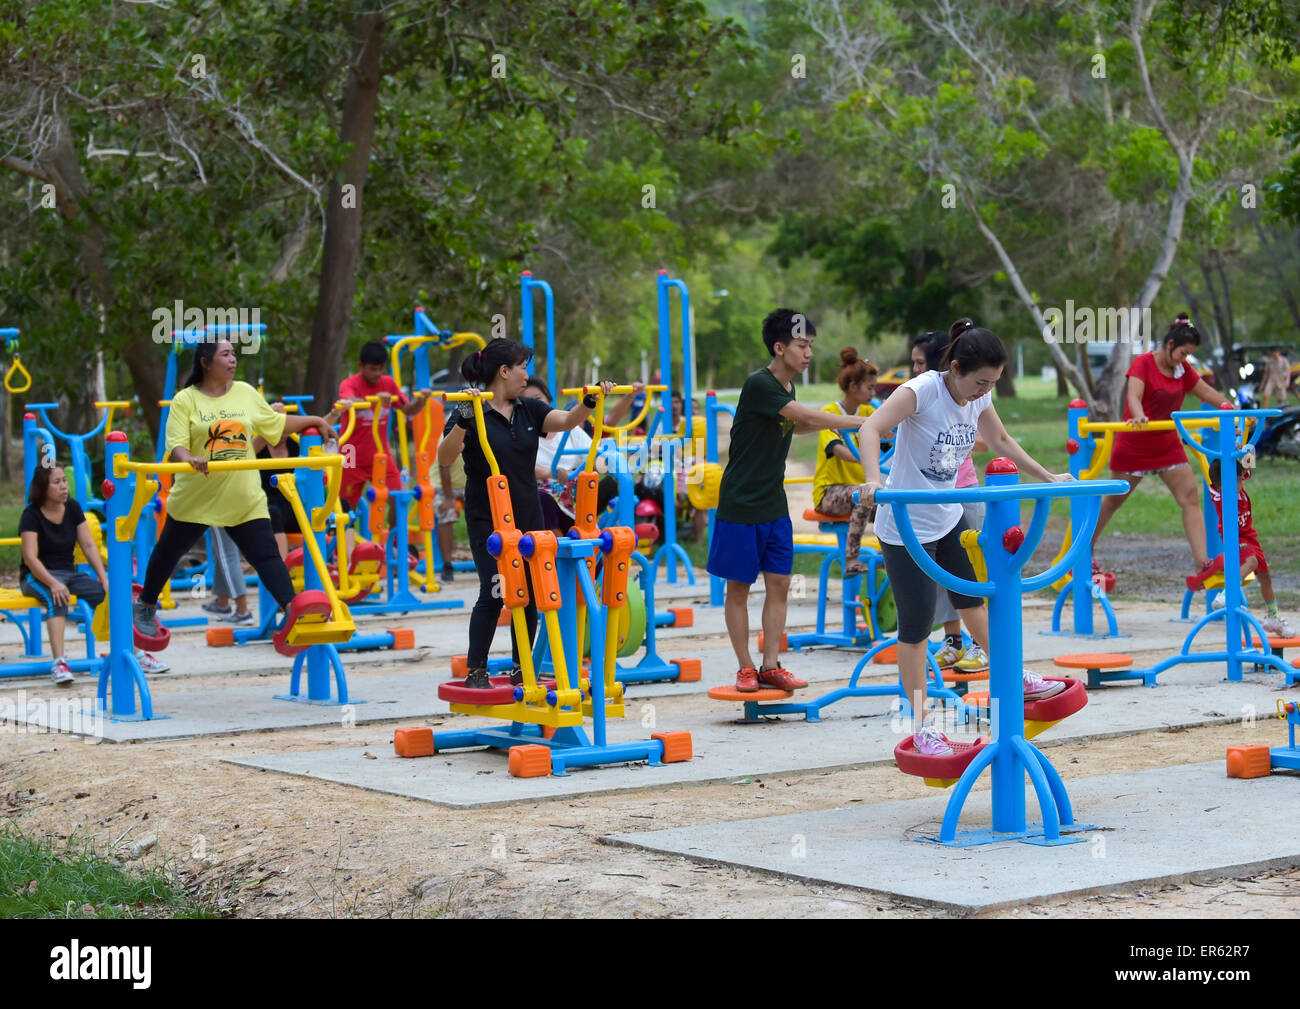 Hobby athletes training on open air fitness equipment, Lamai, Koh Samui, Thailand - Stock Image